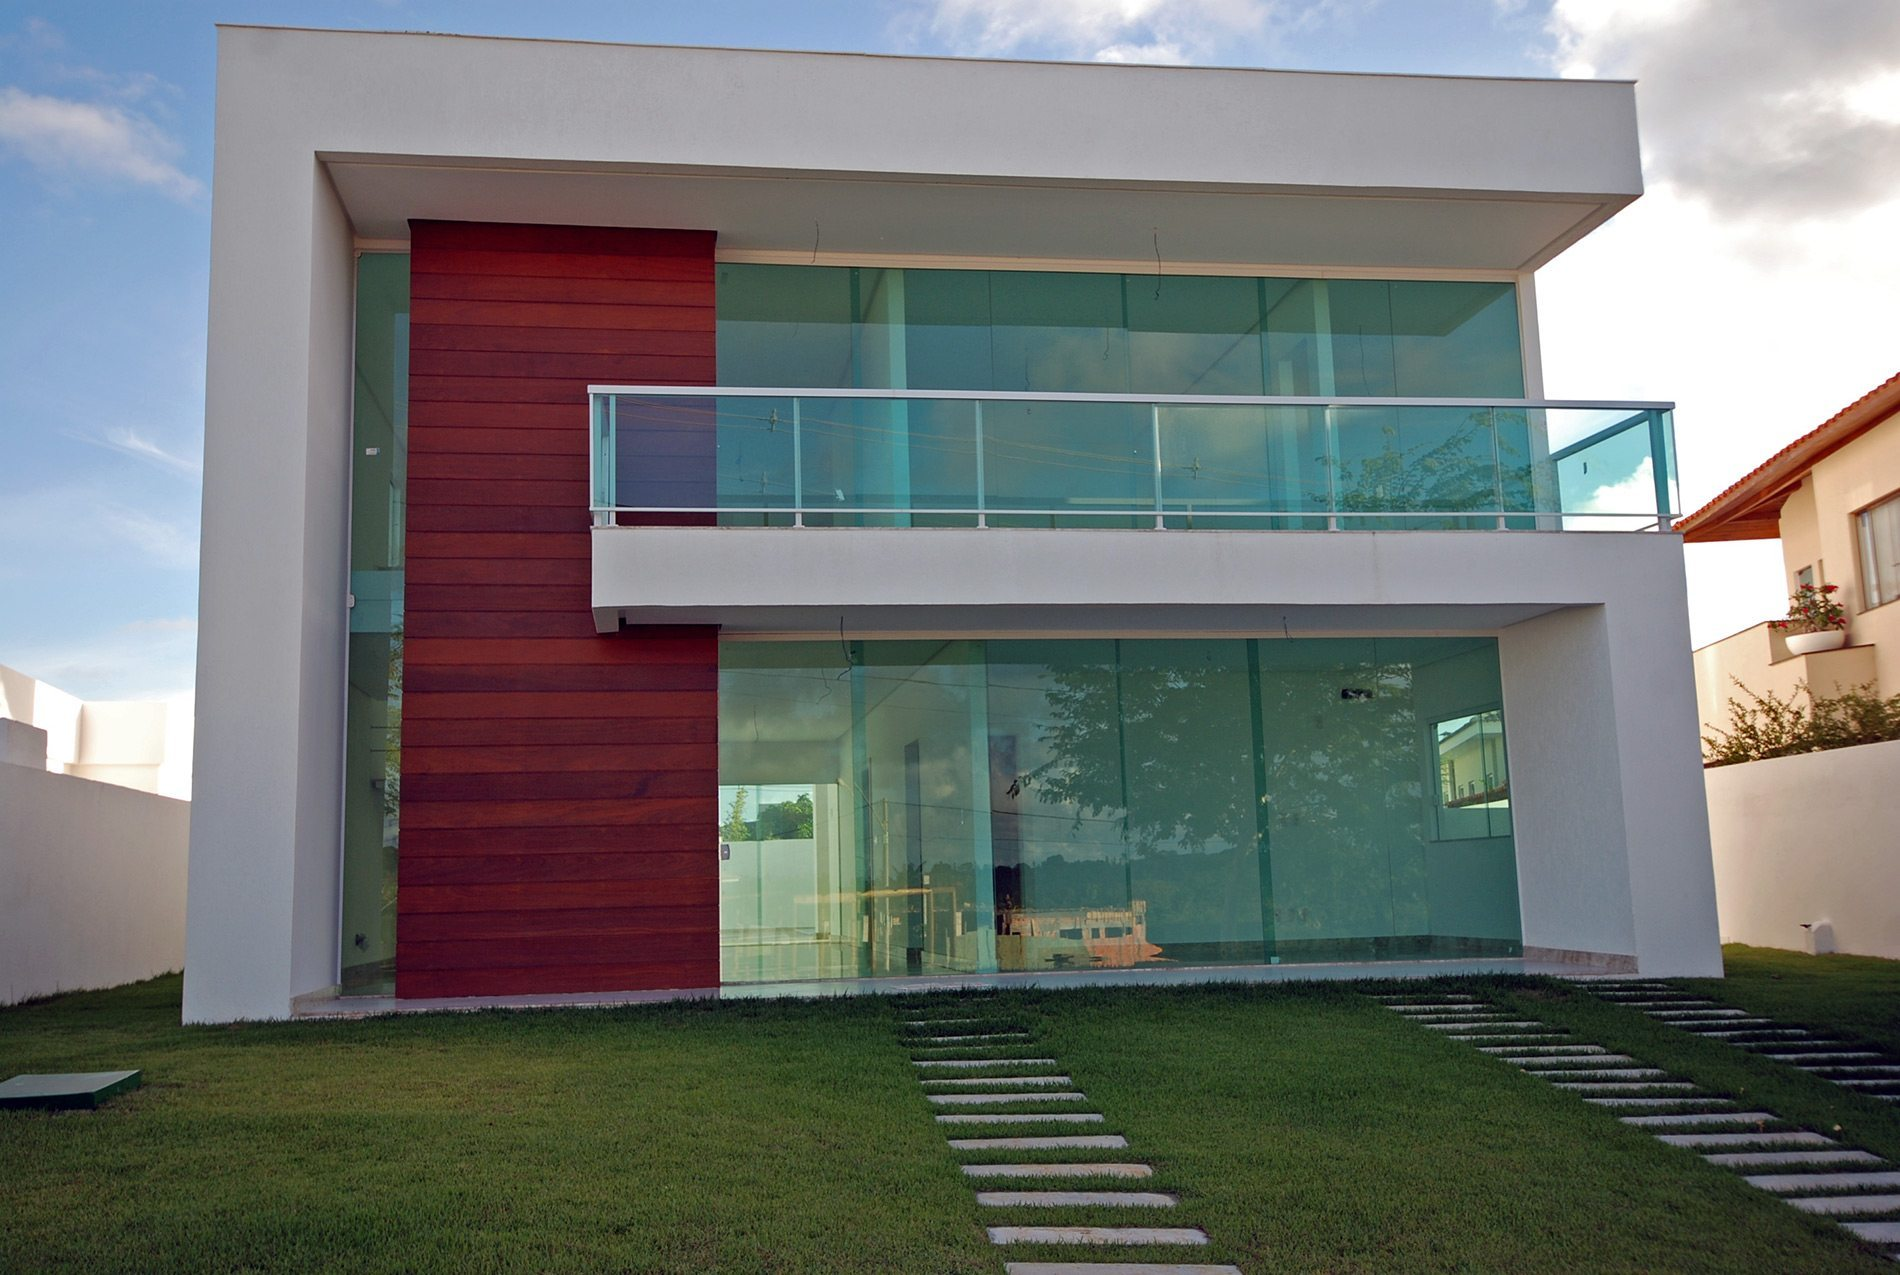 New house for sale Alphaville Litoral Norte Camaçari